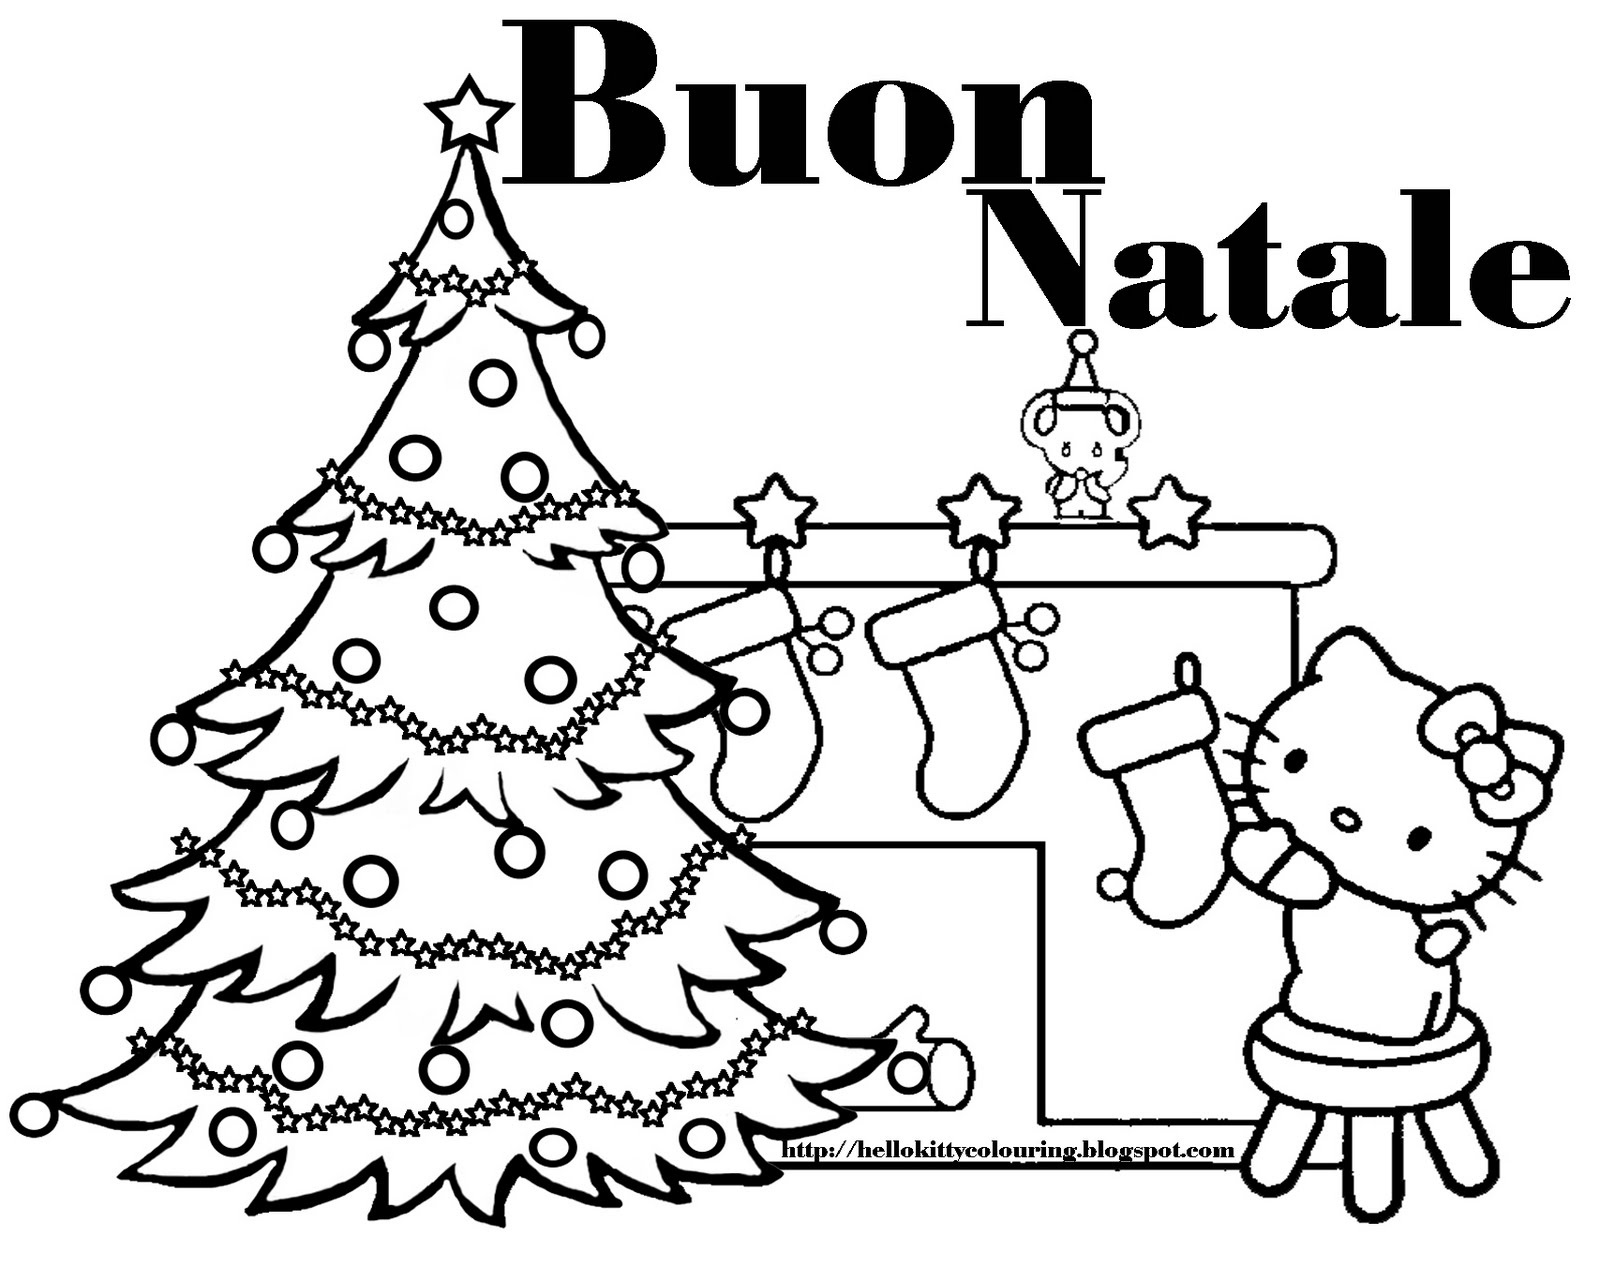 hello kitty christmas colouring pages hello kitty christmas coloring page wallpapers9 colouring kitty pages christmas hello